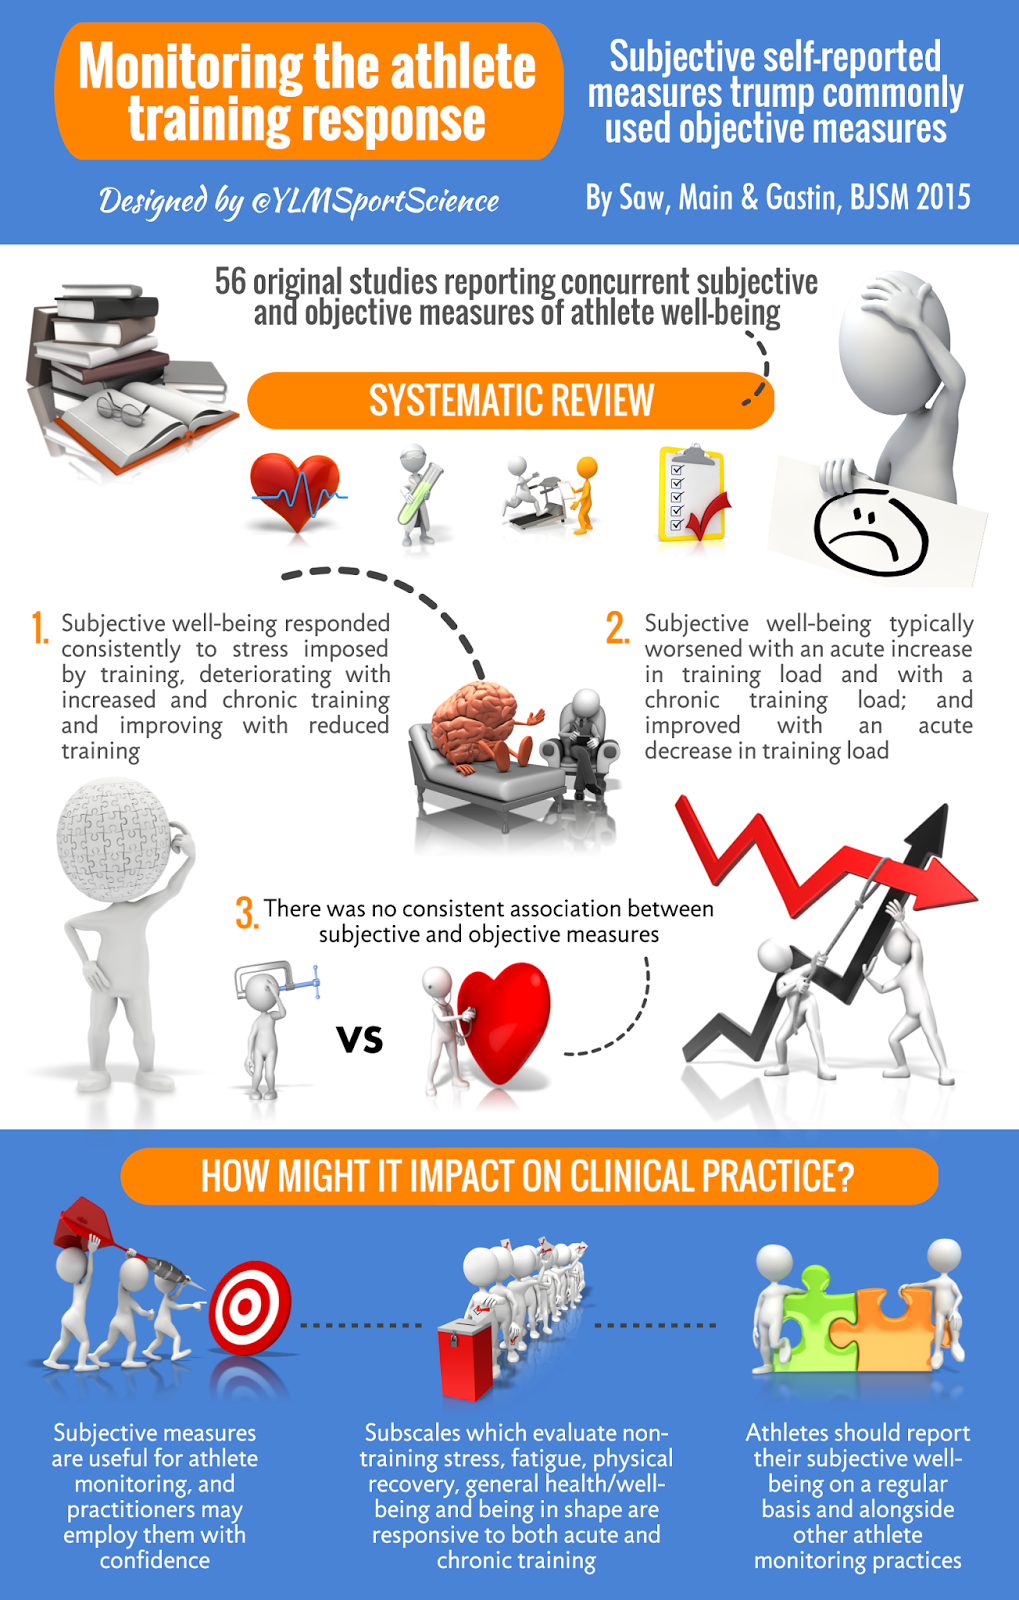 ylmsportscience.com - Subjective Self-reported Measures Trump Commonly Used Objective Measures